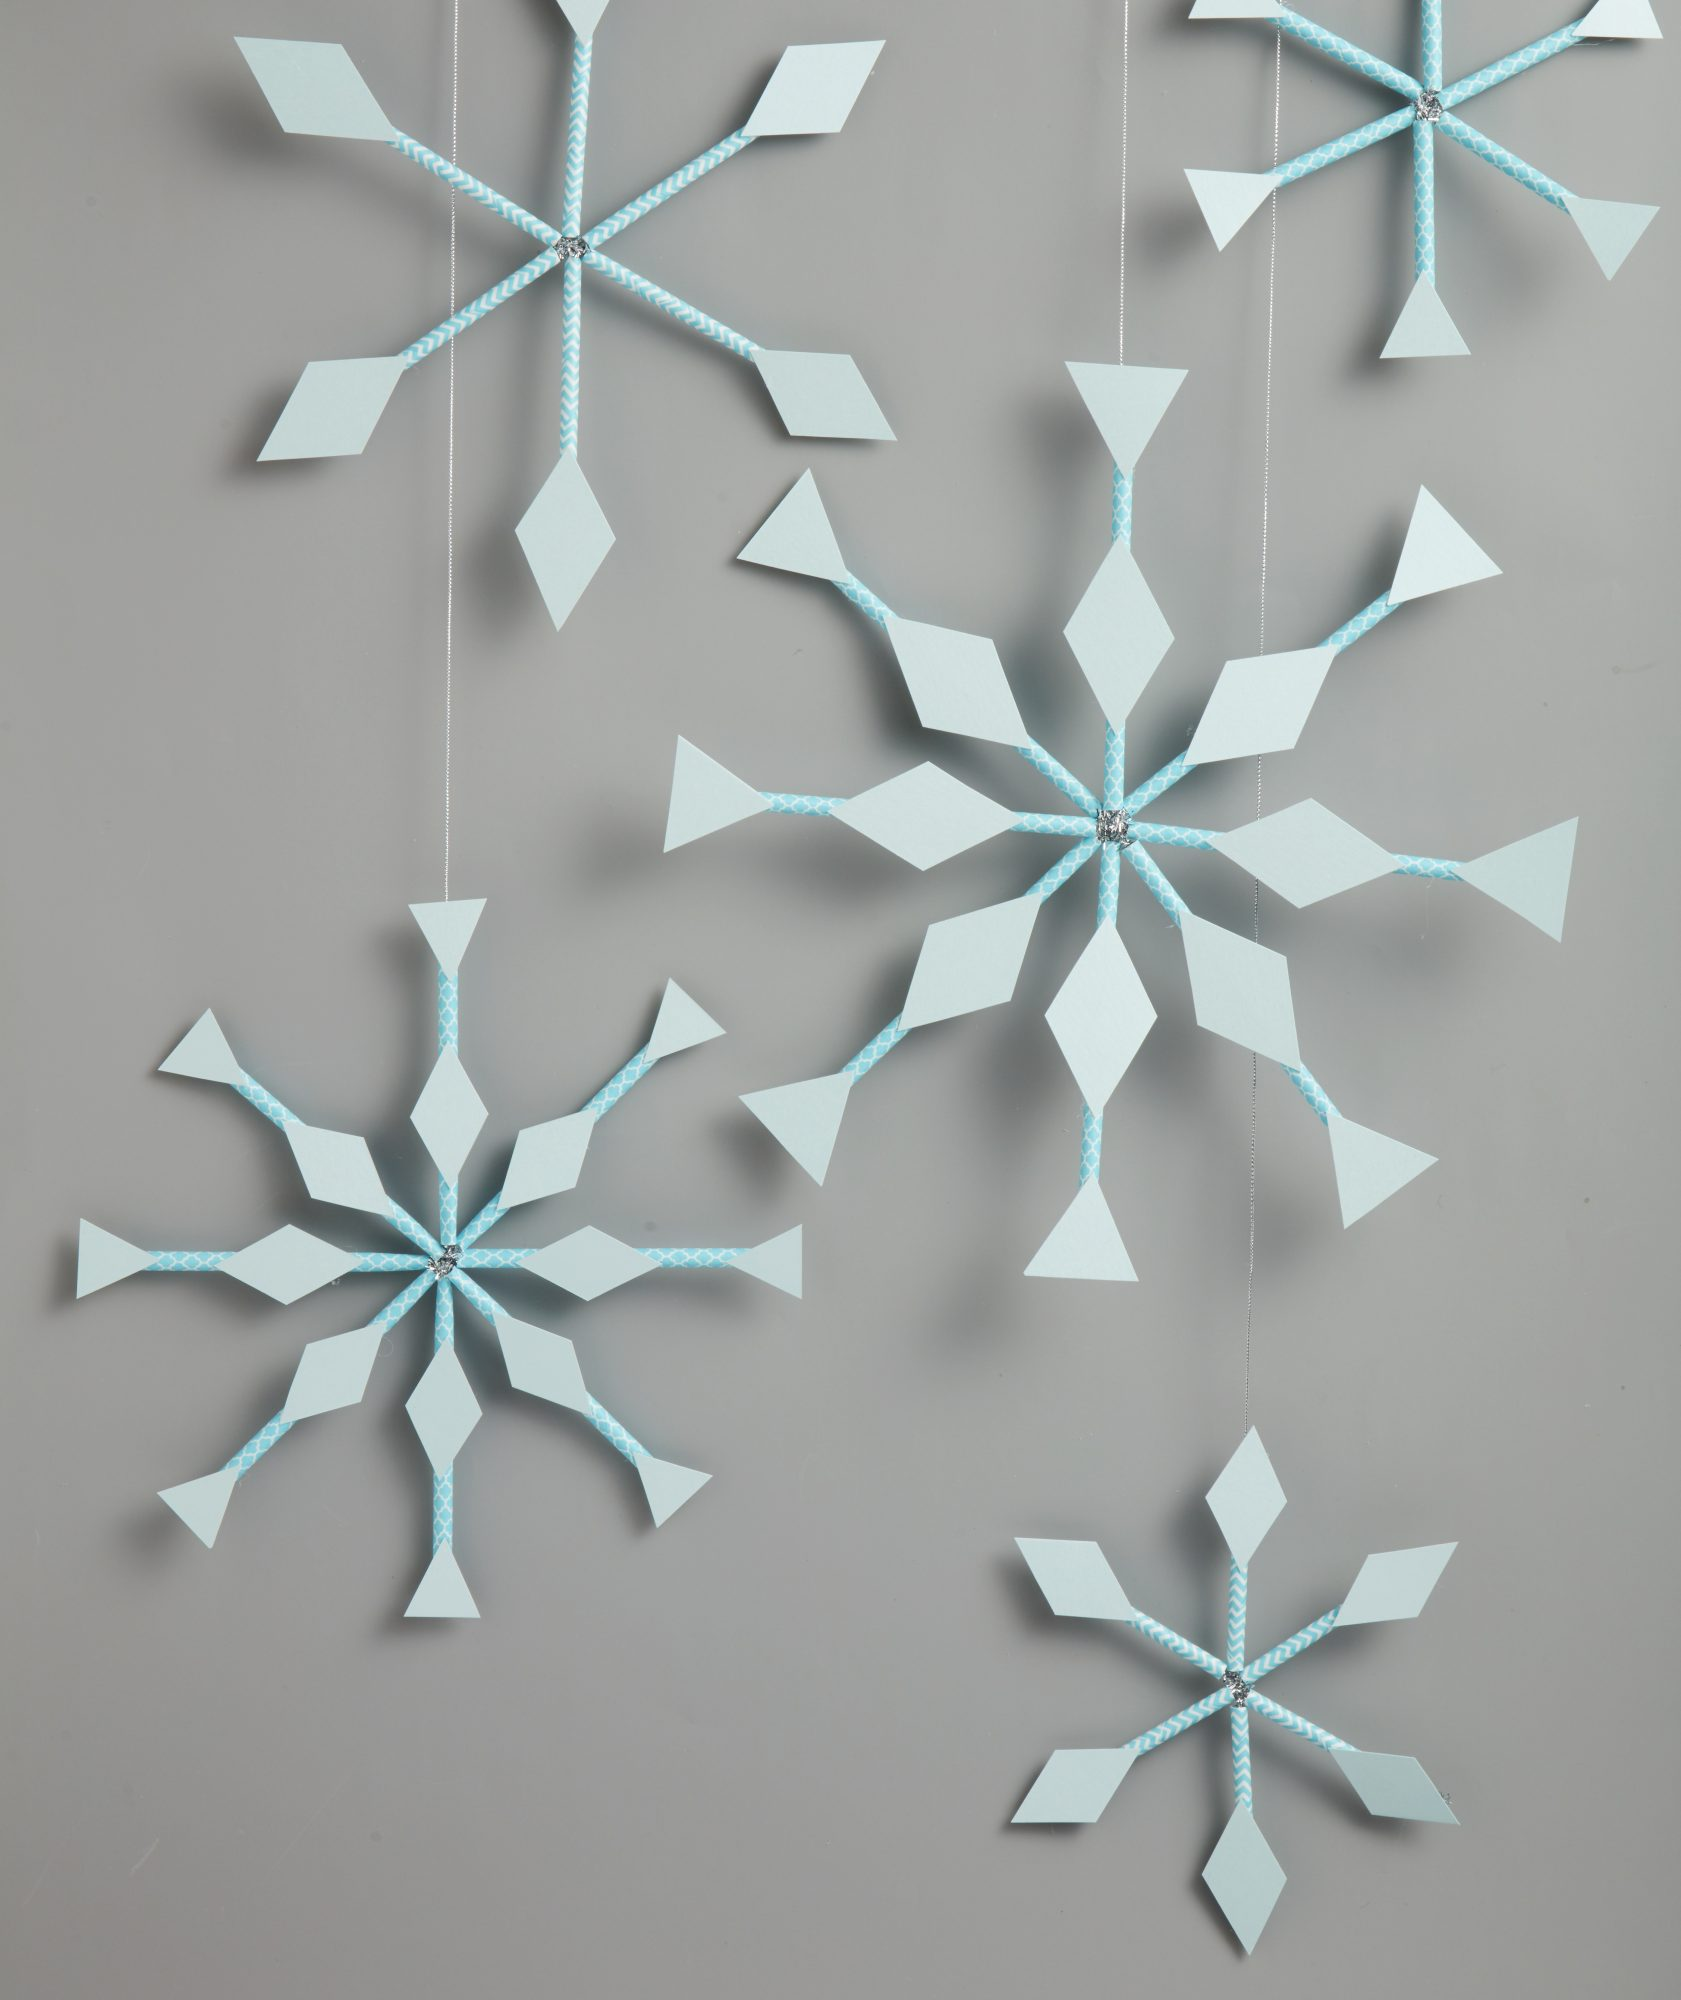 Snowflake decorations and snowflake crafts - Paper Straw Snowflake Window Hangings